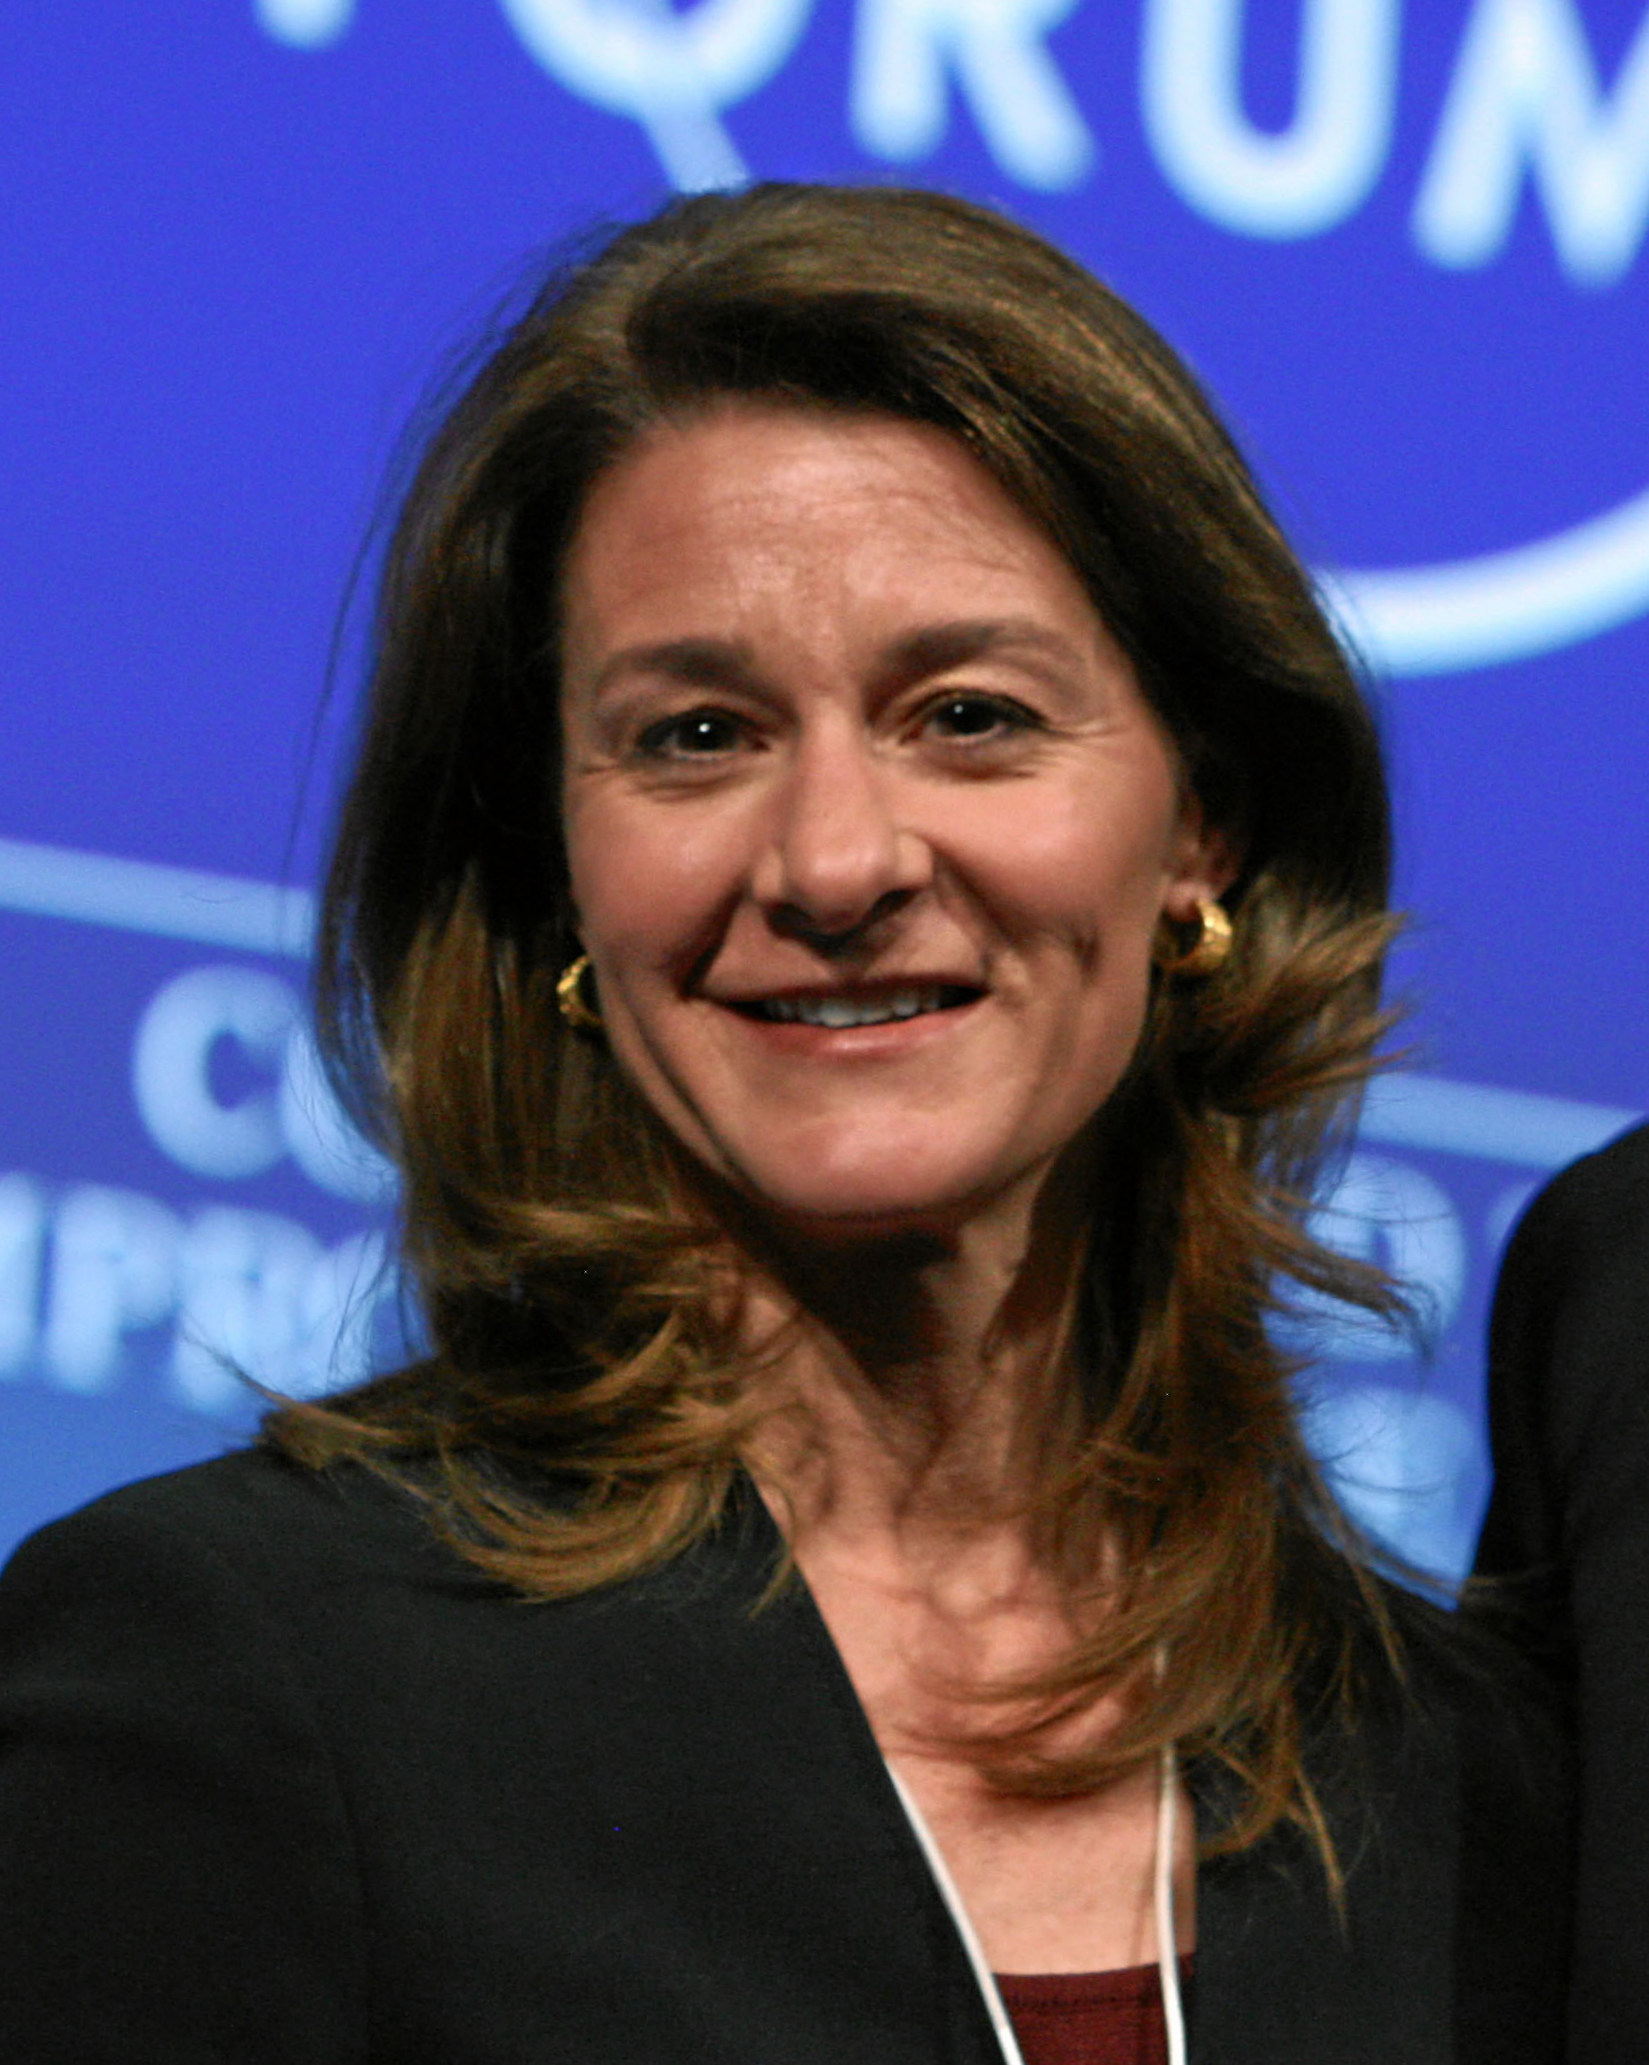 The 54-year old daughter of father Raymond Joseph French Jr. and mother Elaine Agnes Amerland Melinda Gates in 2018 photo. Melinda Gates earned a  million dollar salary - leaving the net worth at 70000 million in 2018